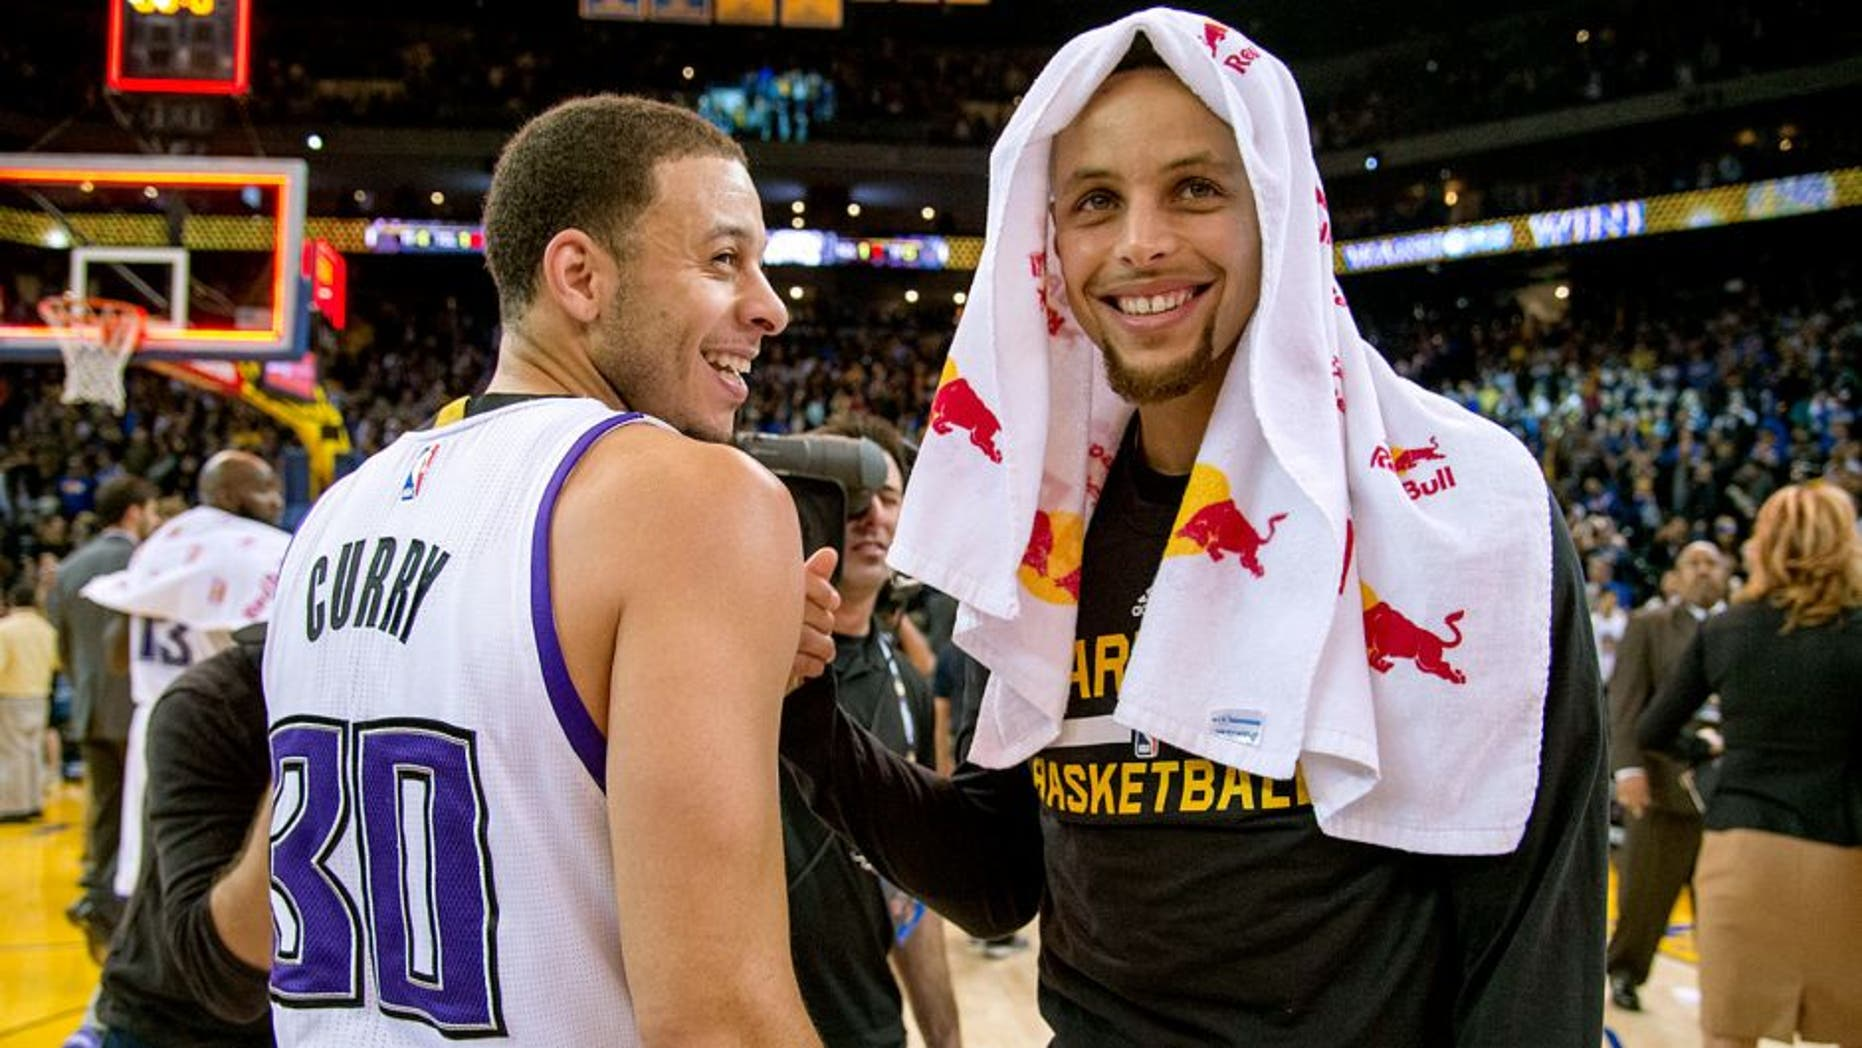 November 28, 2015; Oakland, CA, USA; Sacramento Kings guard Seth Curry (30, left) smiles while talking with Golden State Warriors guard Stephen Curry (30, right) after the game at Oracle Arena. The Warriors defeated the Kings 120-101. Mandatory Credit: Kyle Terada-USA TODAY Sports